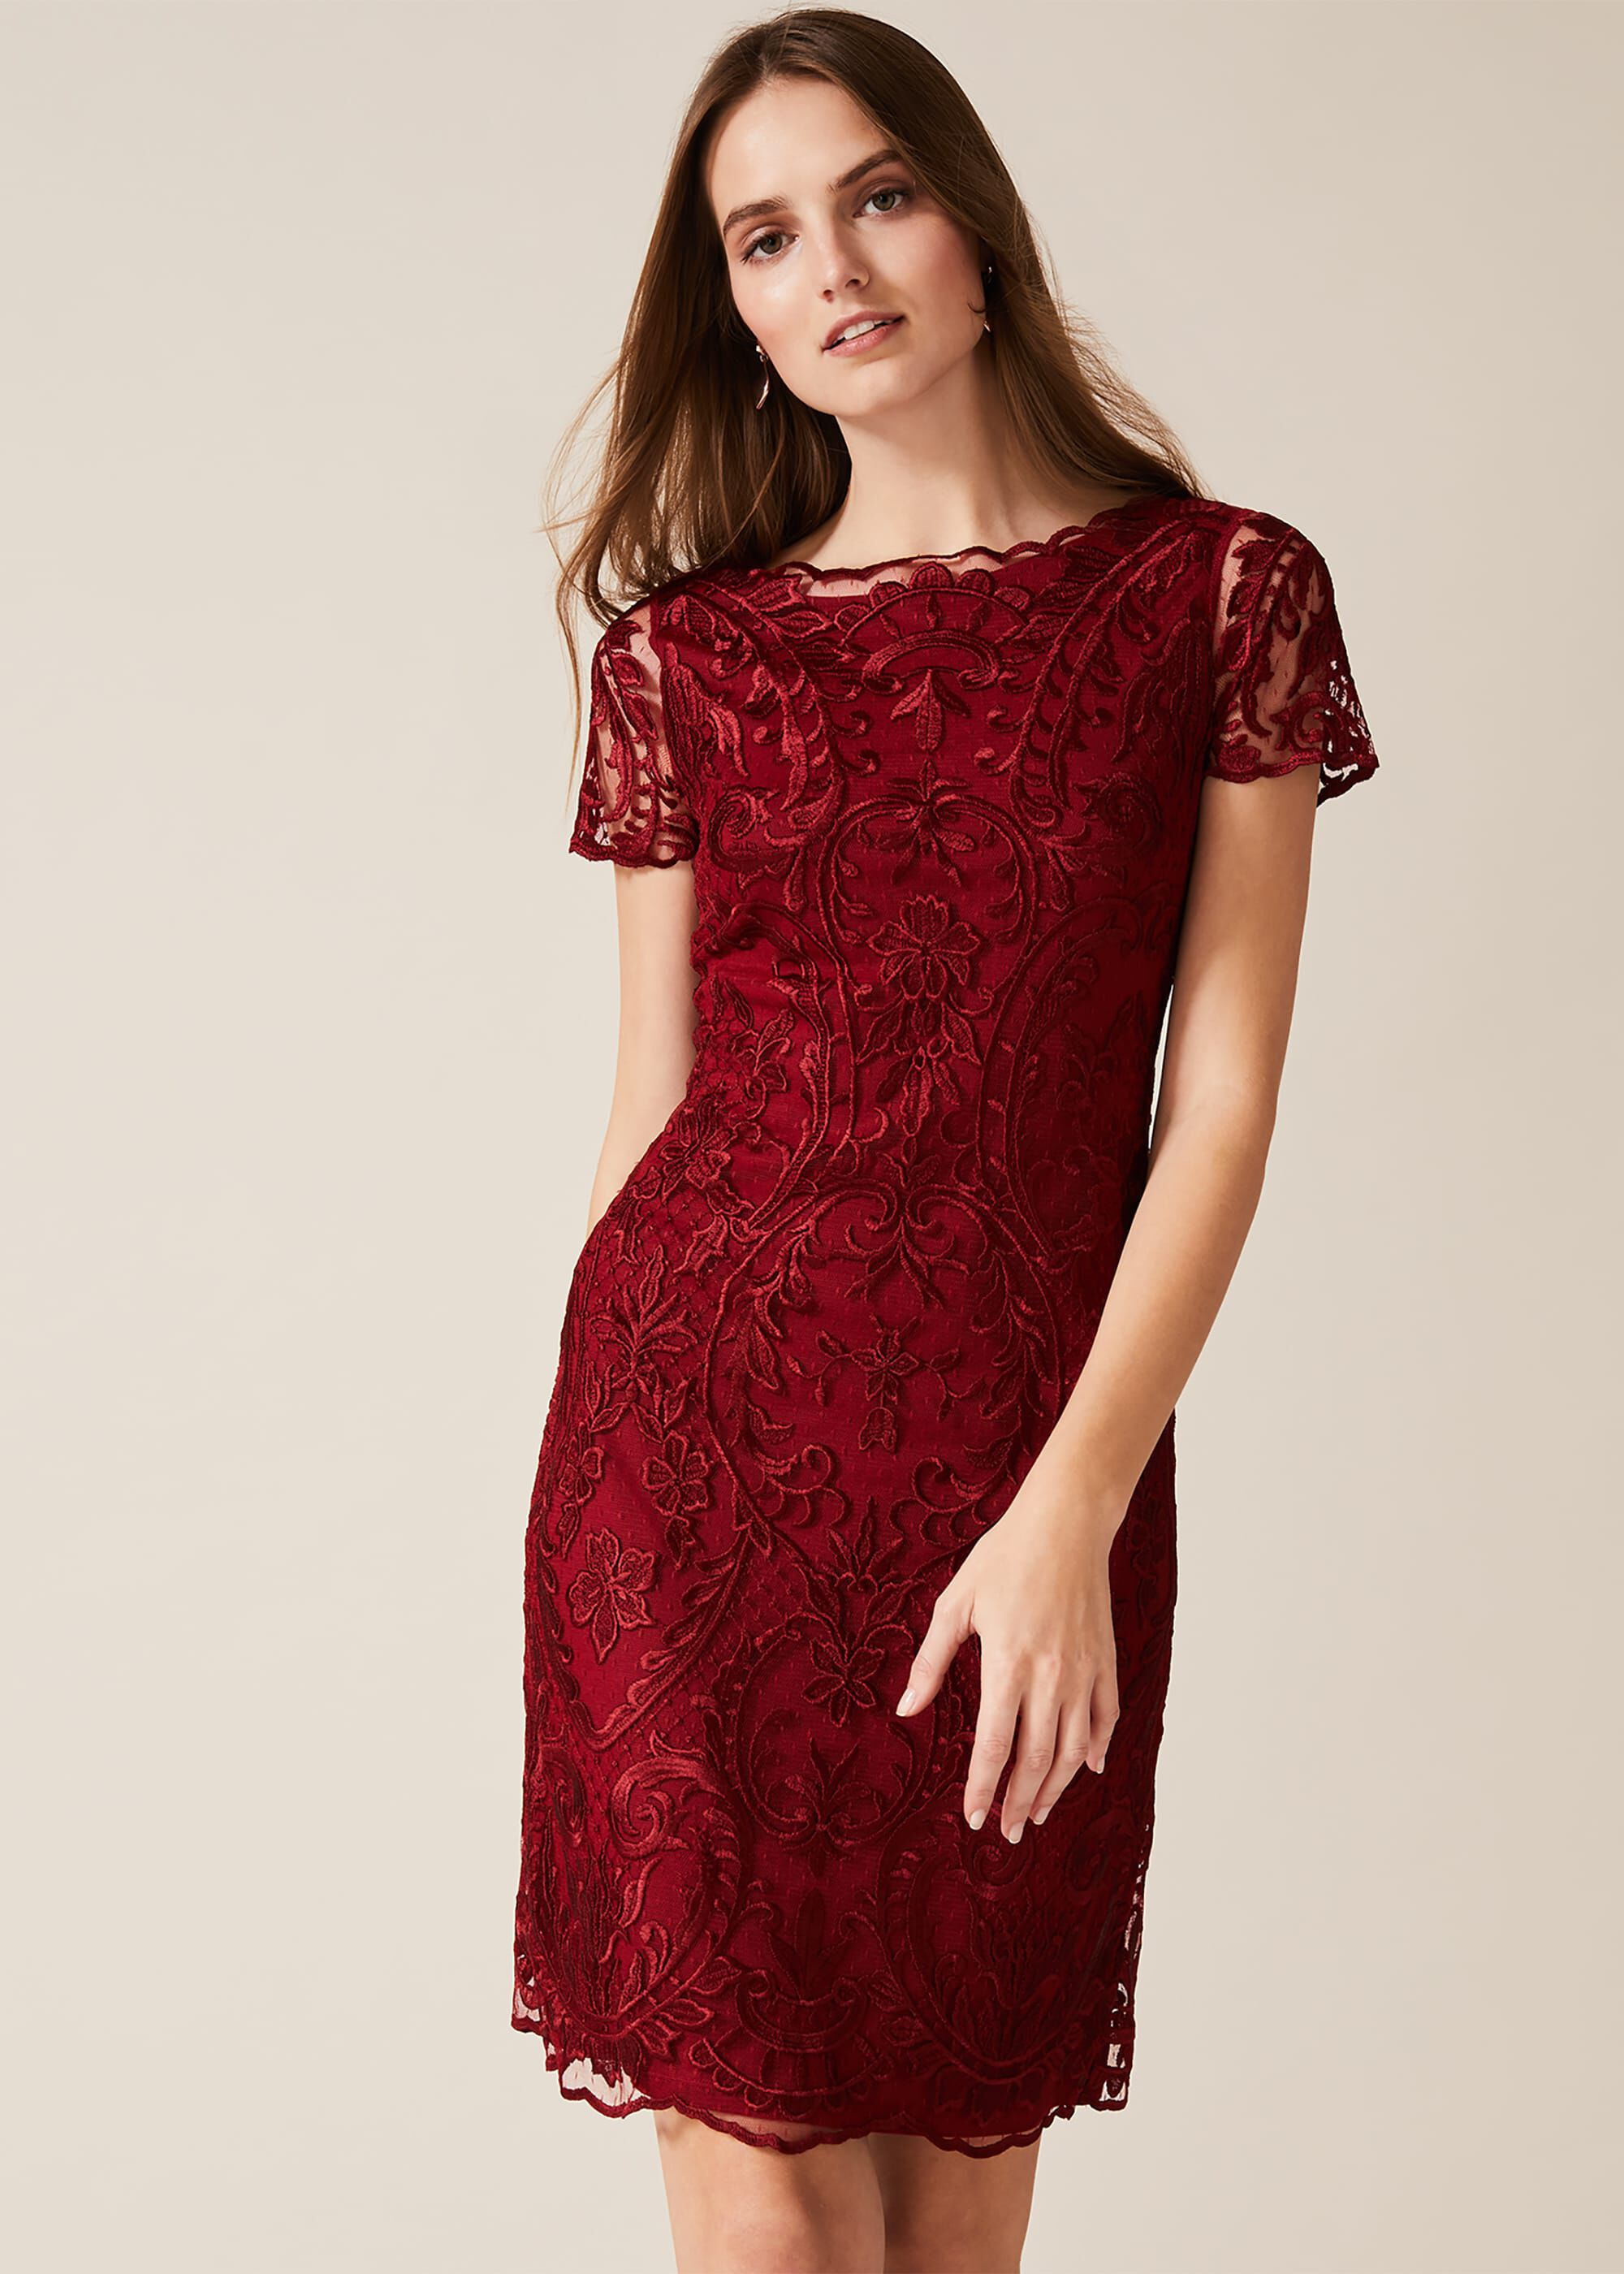 Phase Eight Lizzy Embroidered Dress, Red, Shift, Occasion Dress